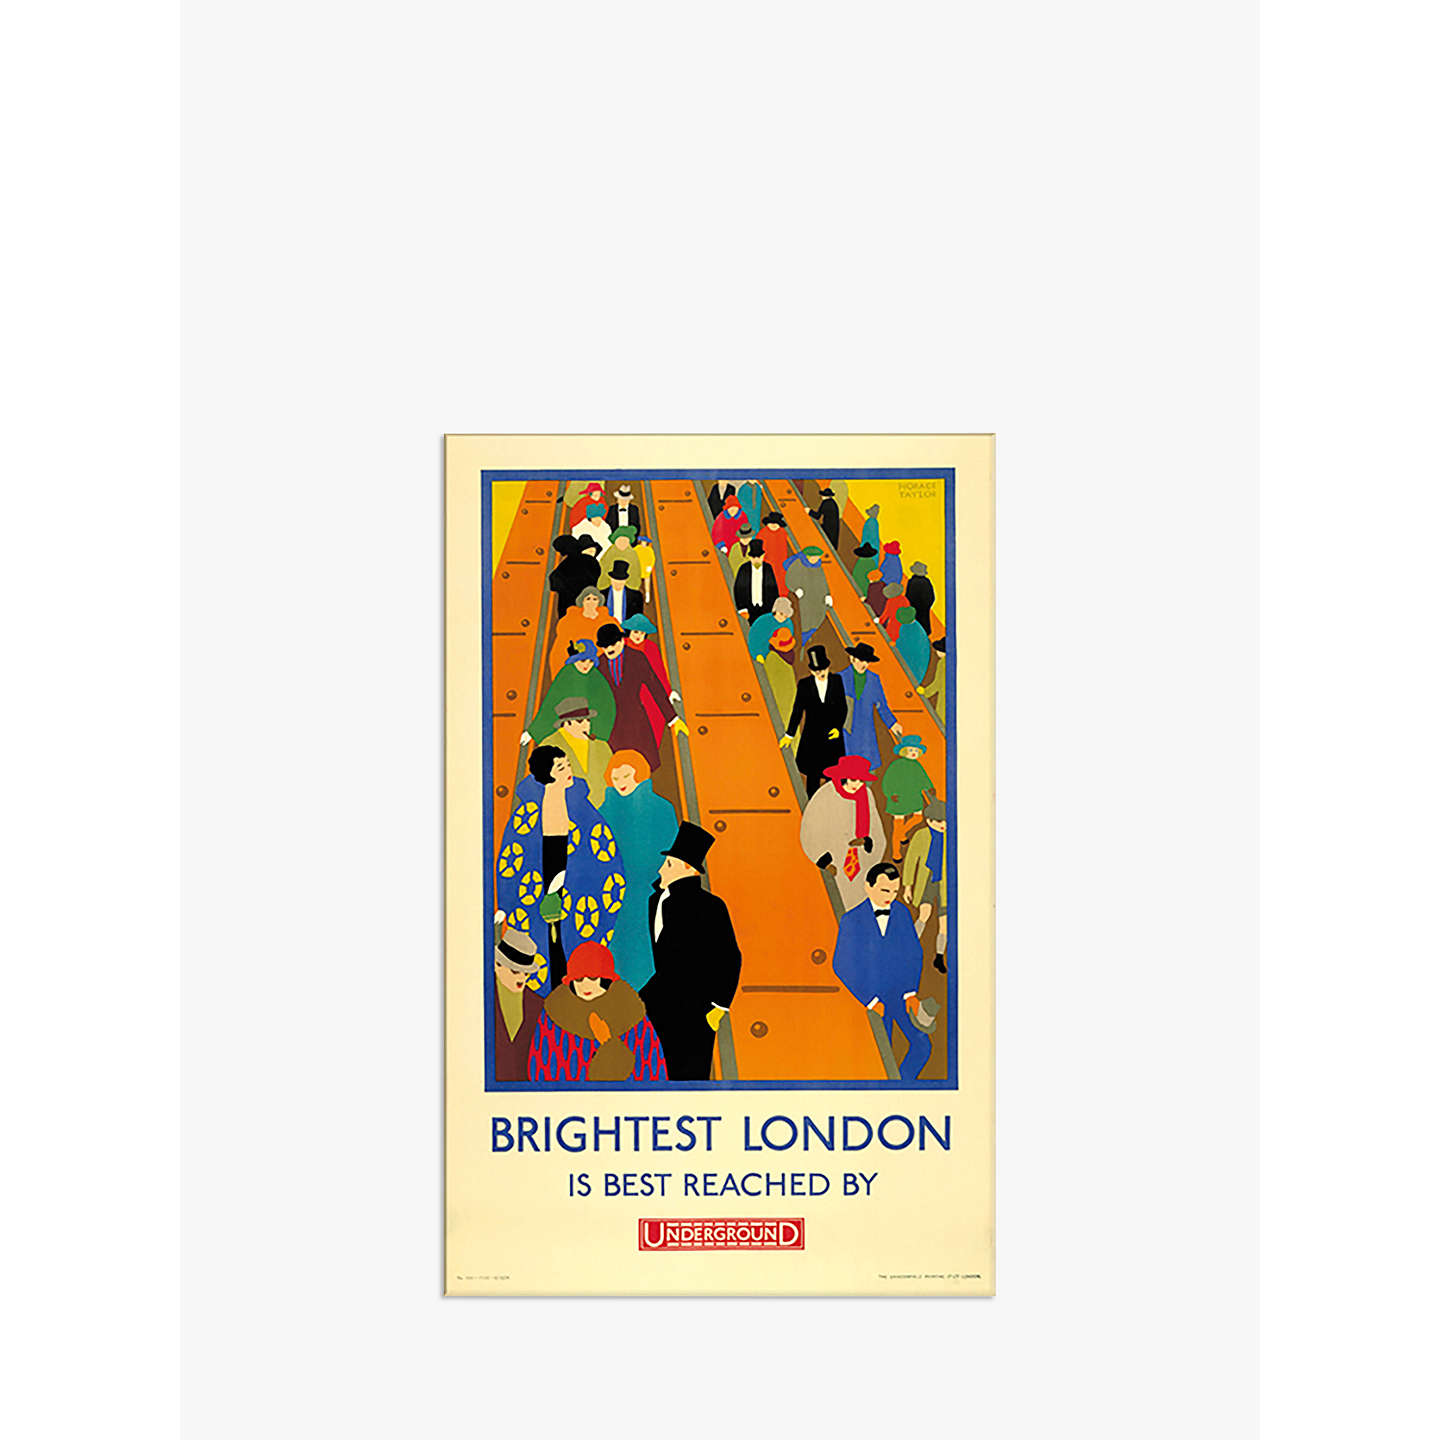 BuyLondon Transport Museum - Brightest London is Reached by Underground Print, 30 x 40cm Online at johnlewis.com